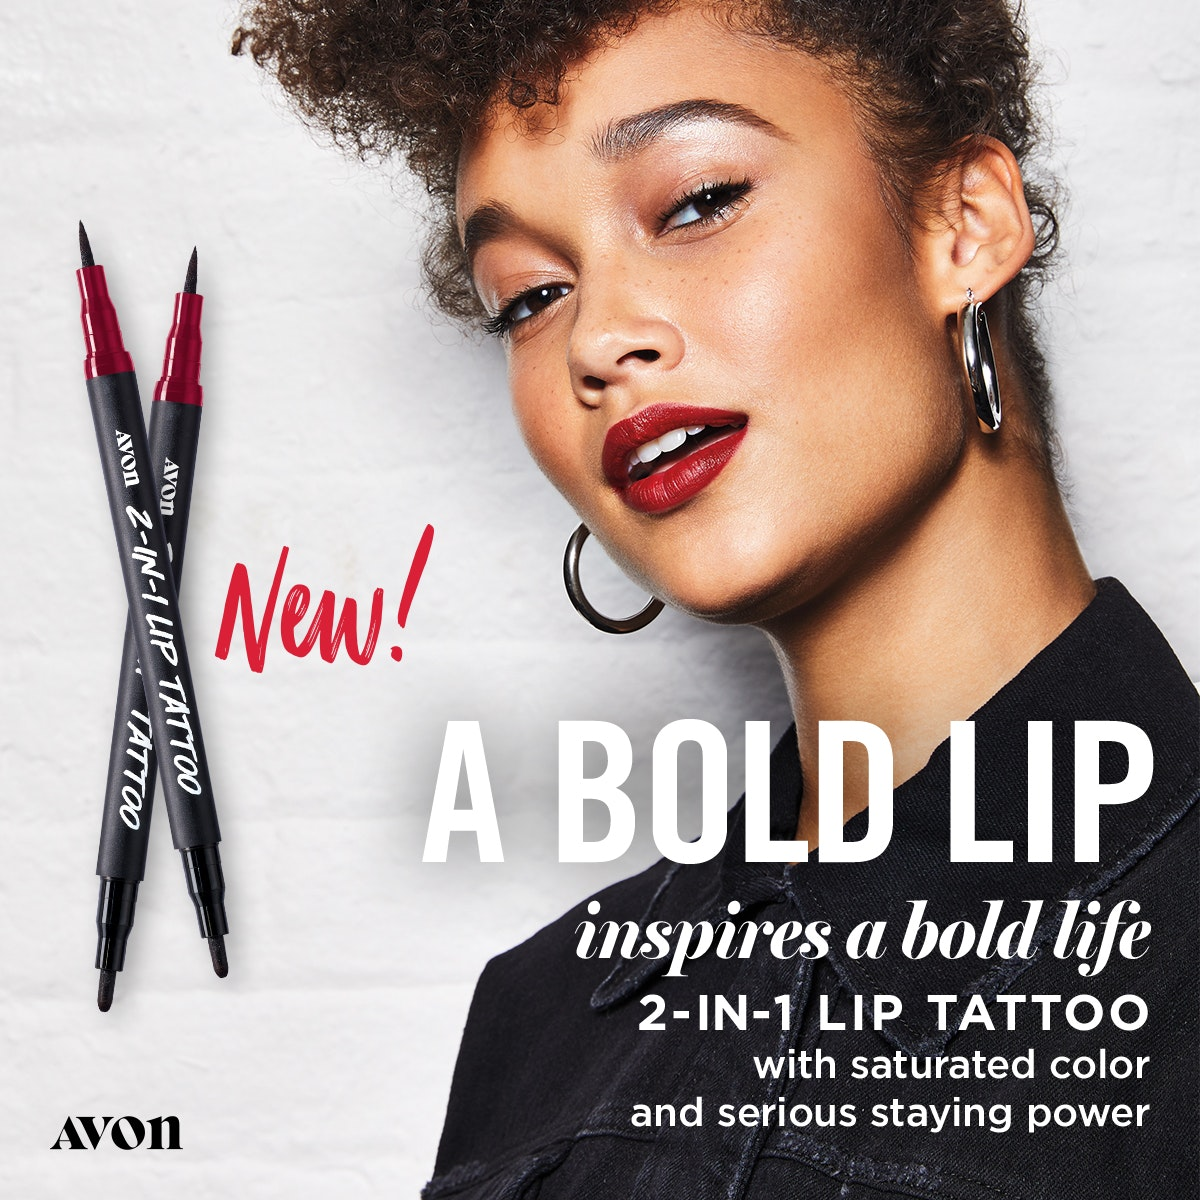 2-IN-1 Lip Tattoo from Avon